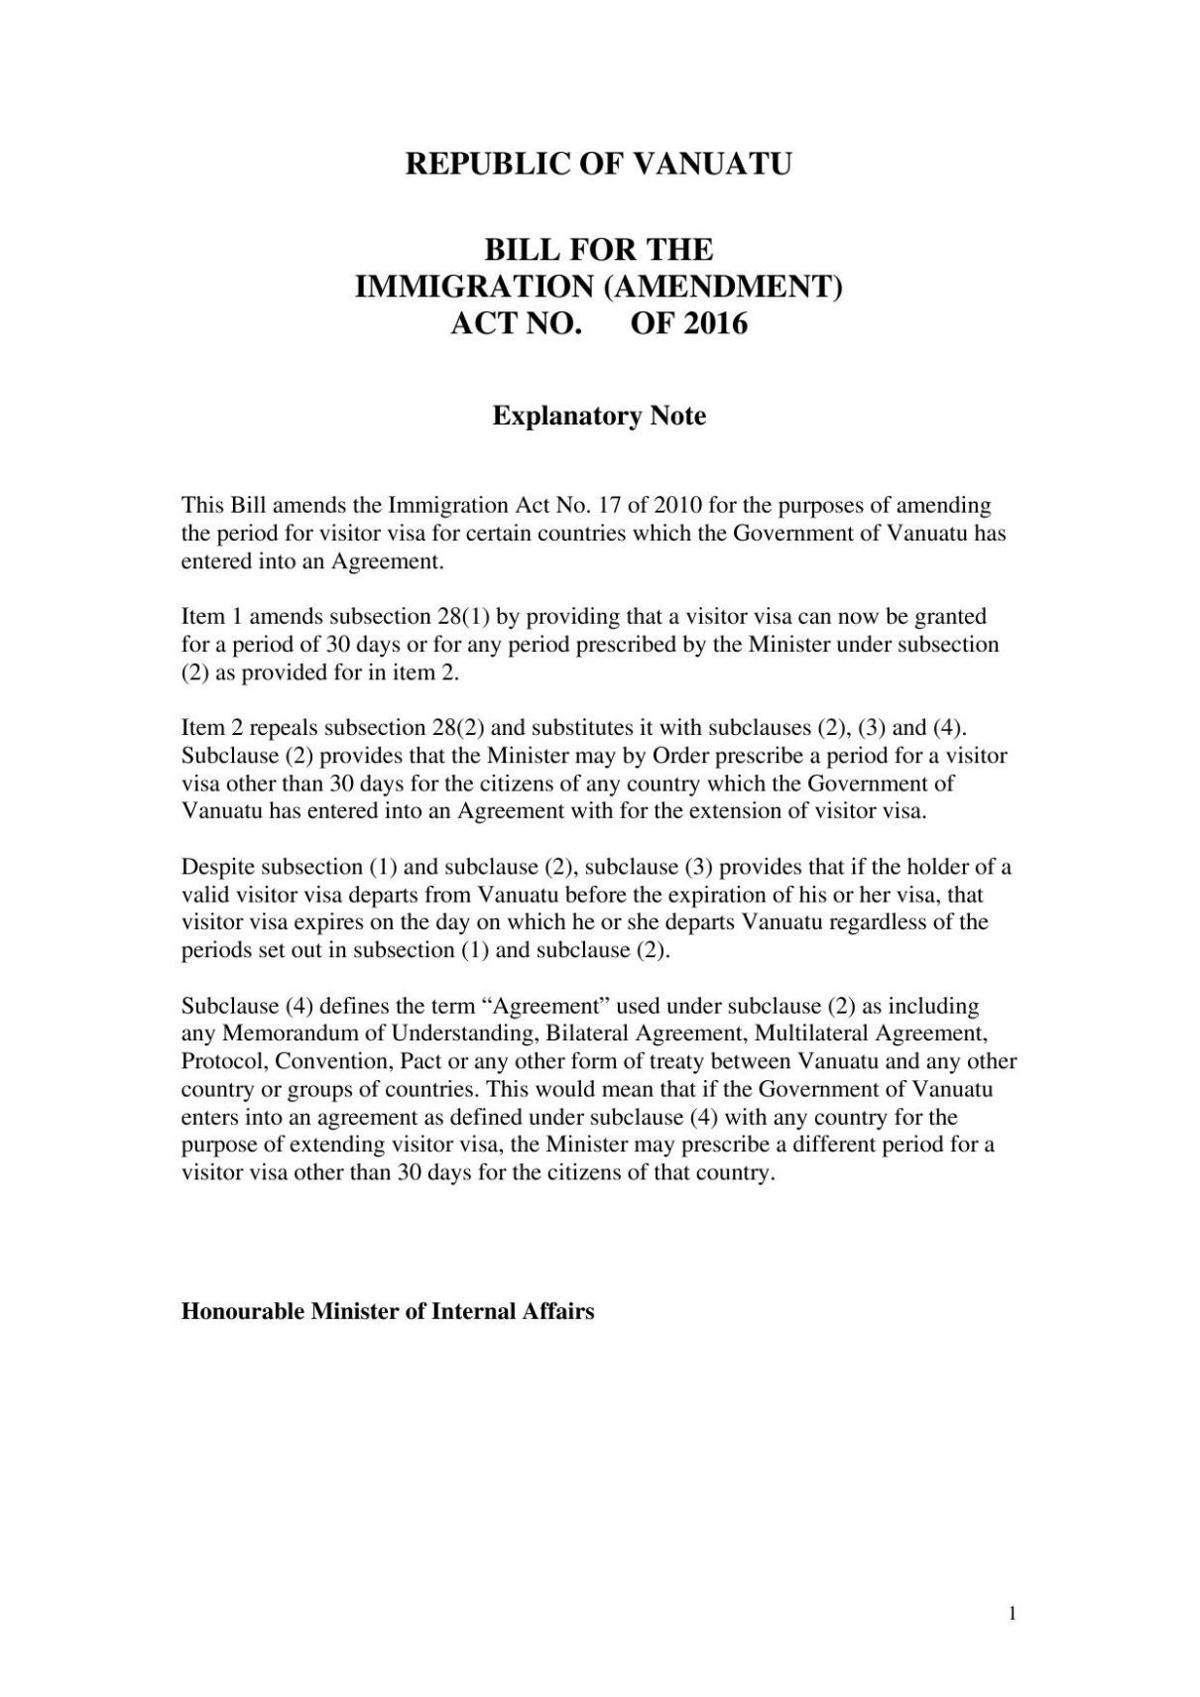 Bill for the Immigration (Amendment) Act No. of 2016.pdf